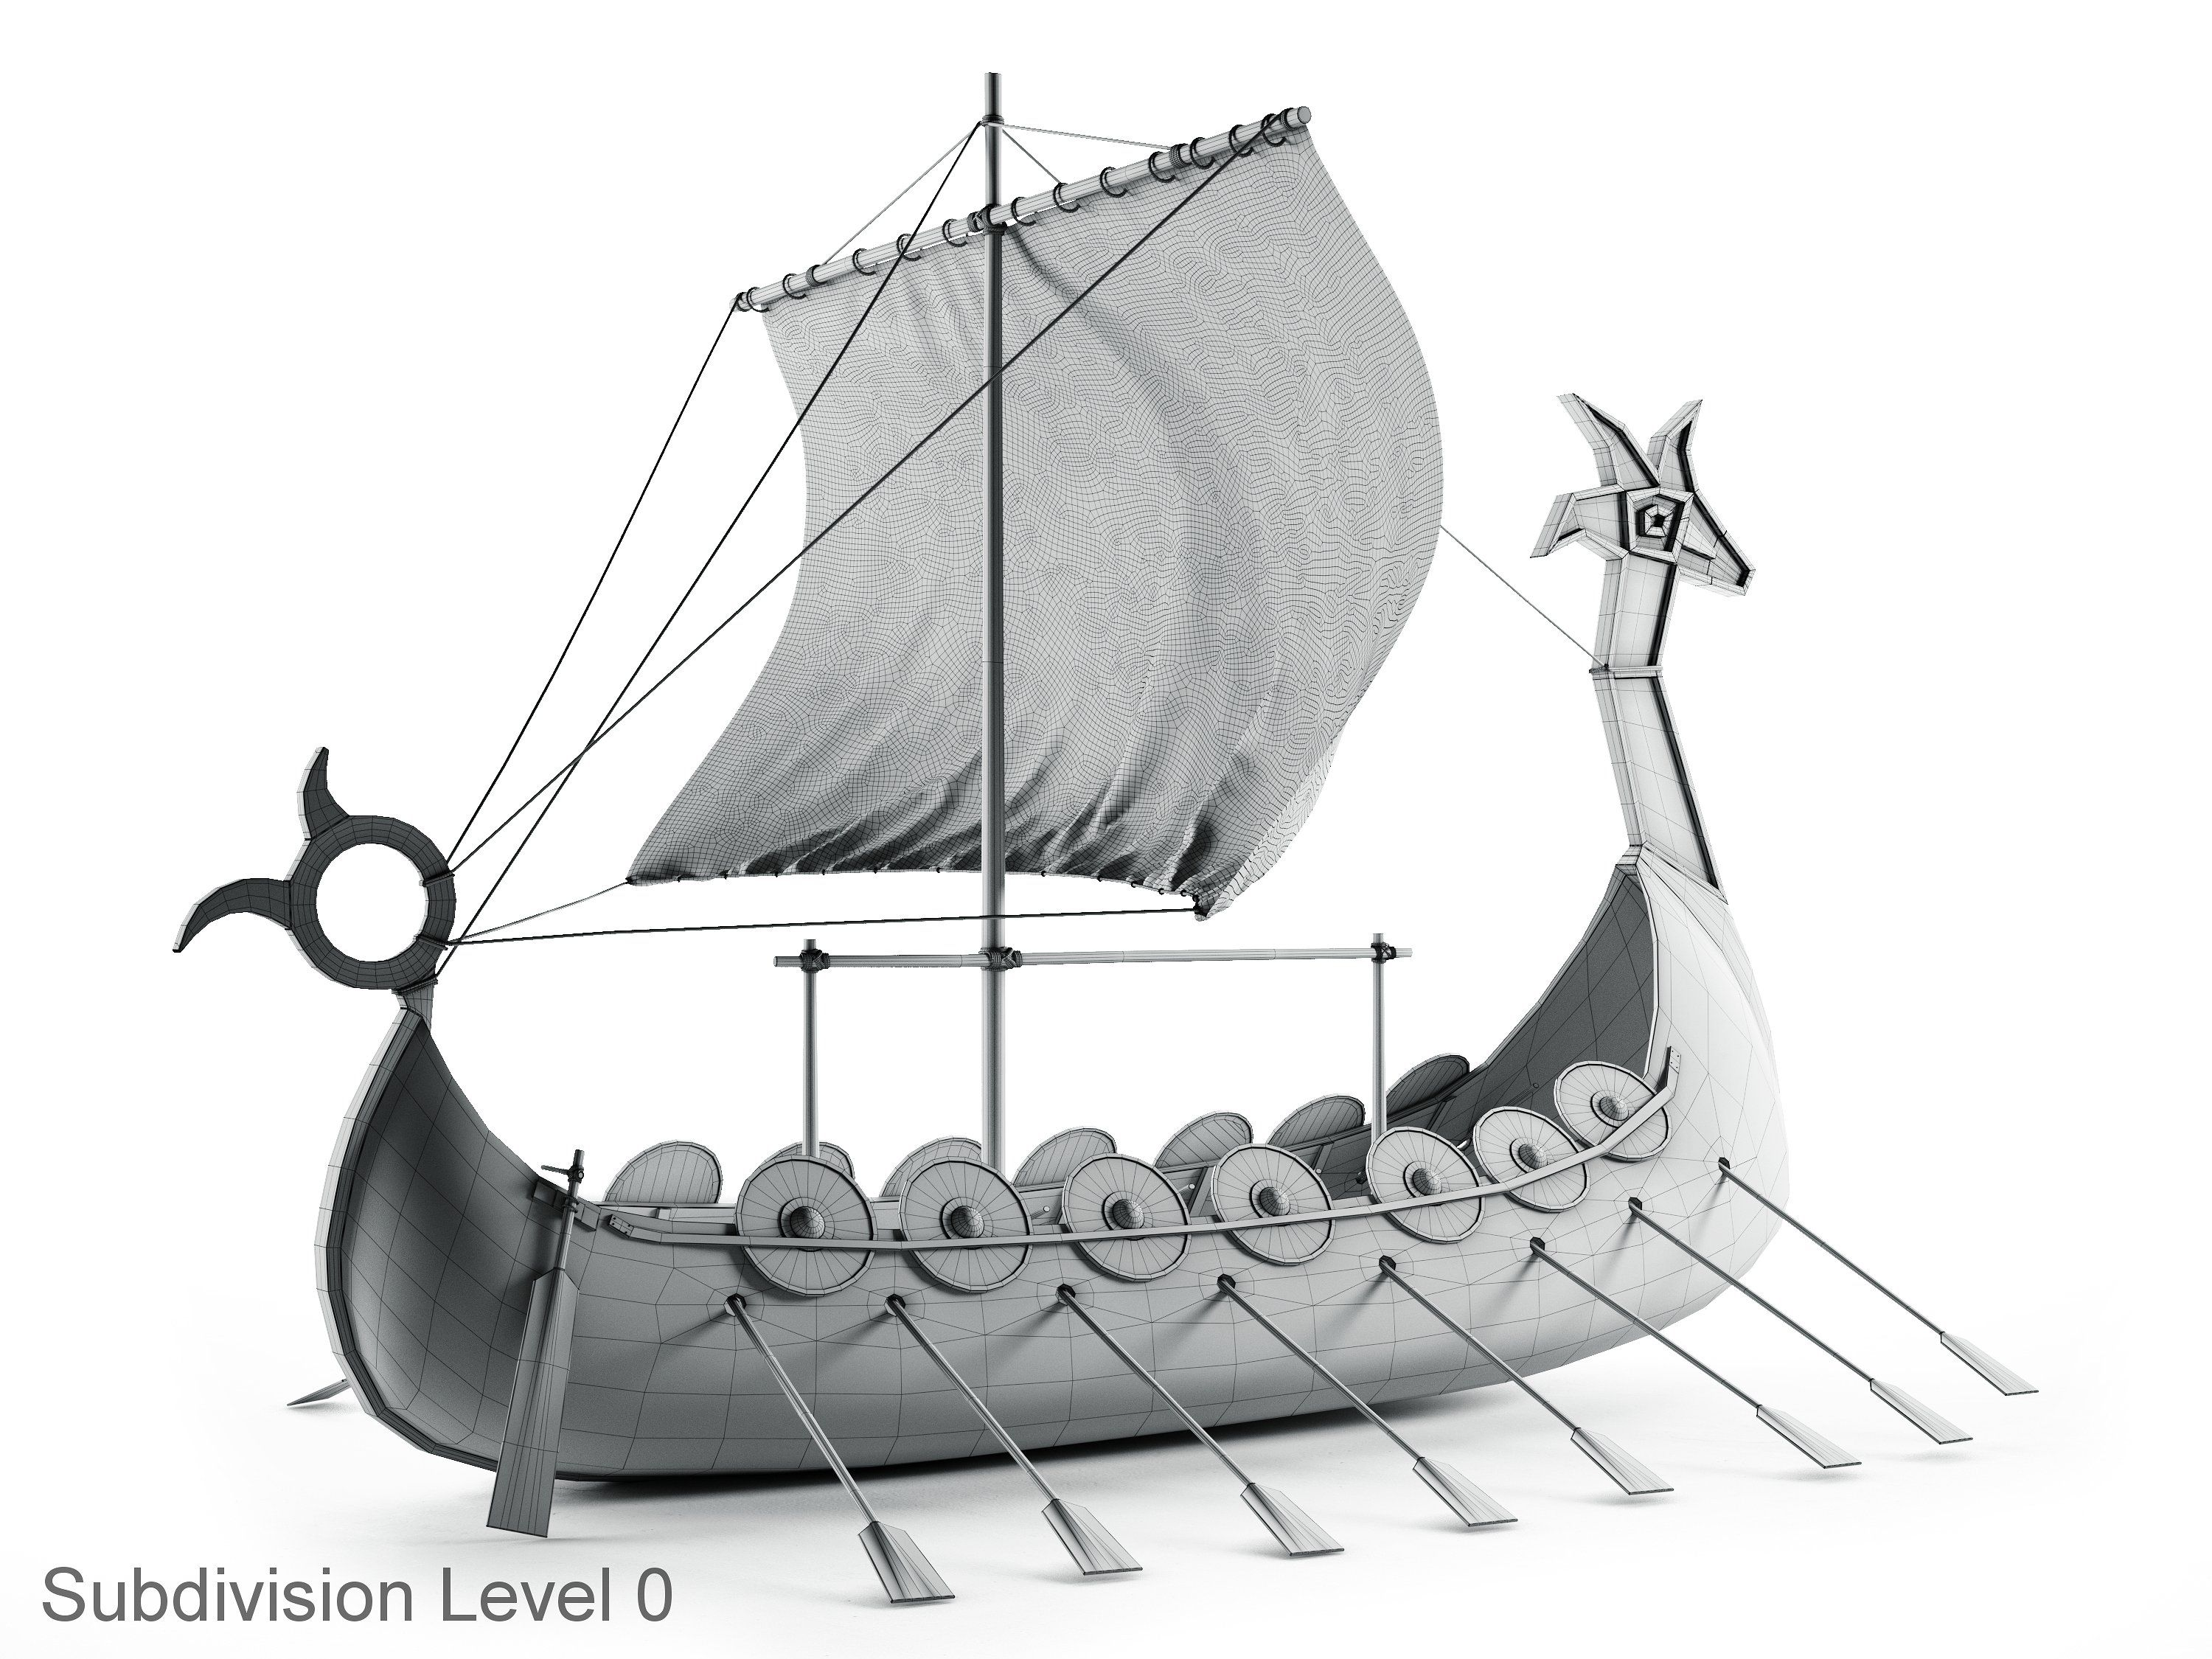 Viking Ship Extremely Detailed Realistic Quality